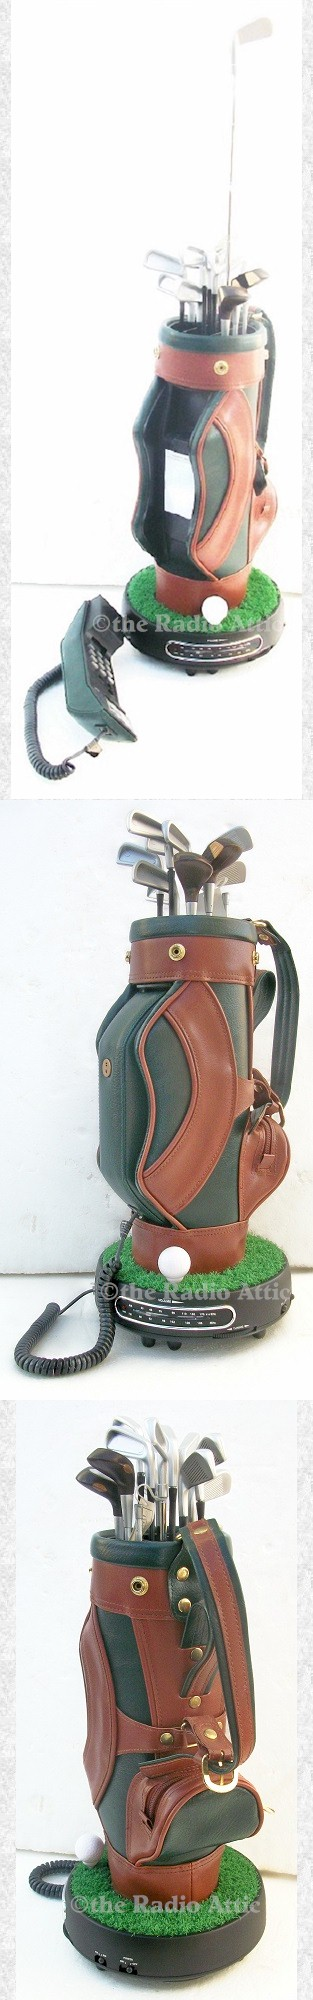 Executive Golf Bag Radio Phone